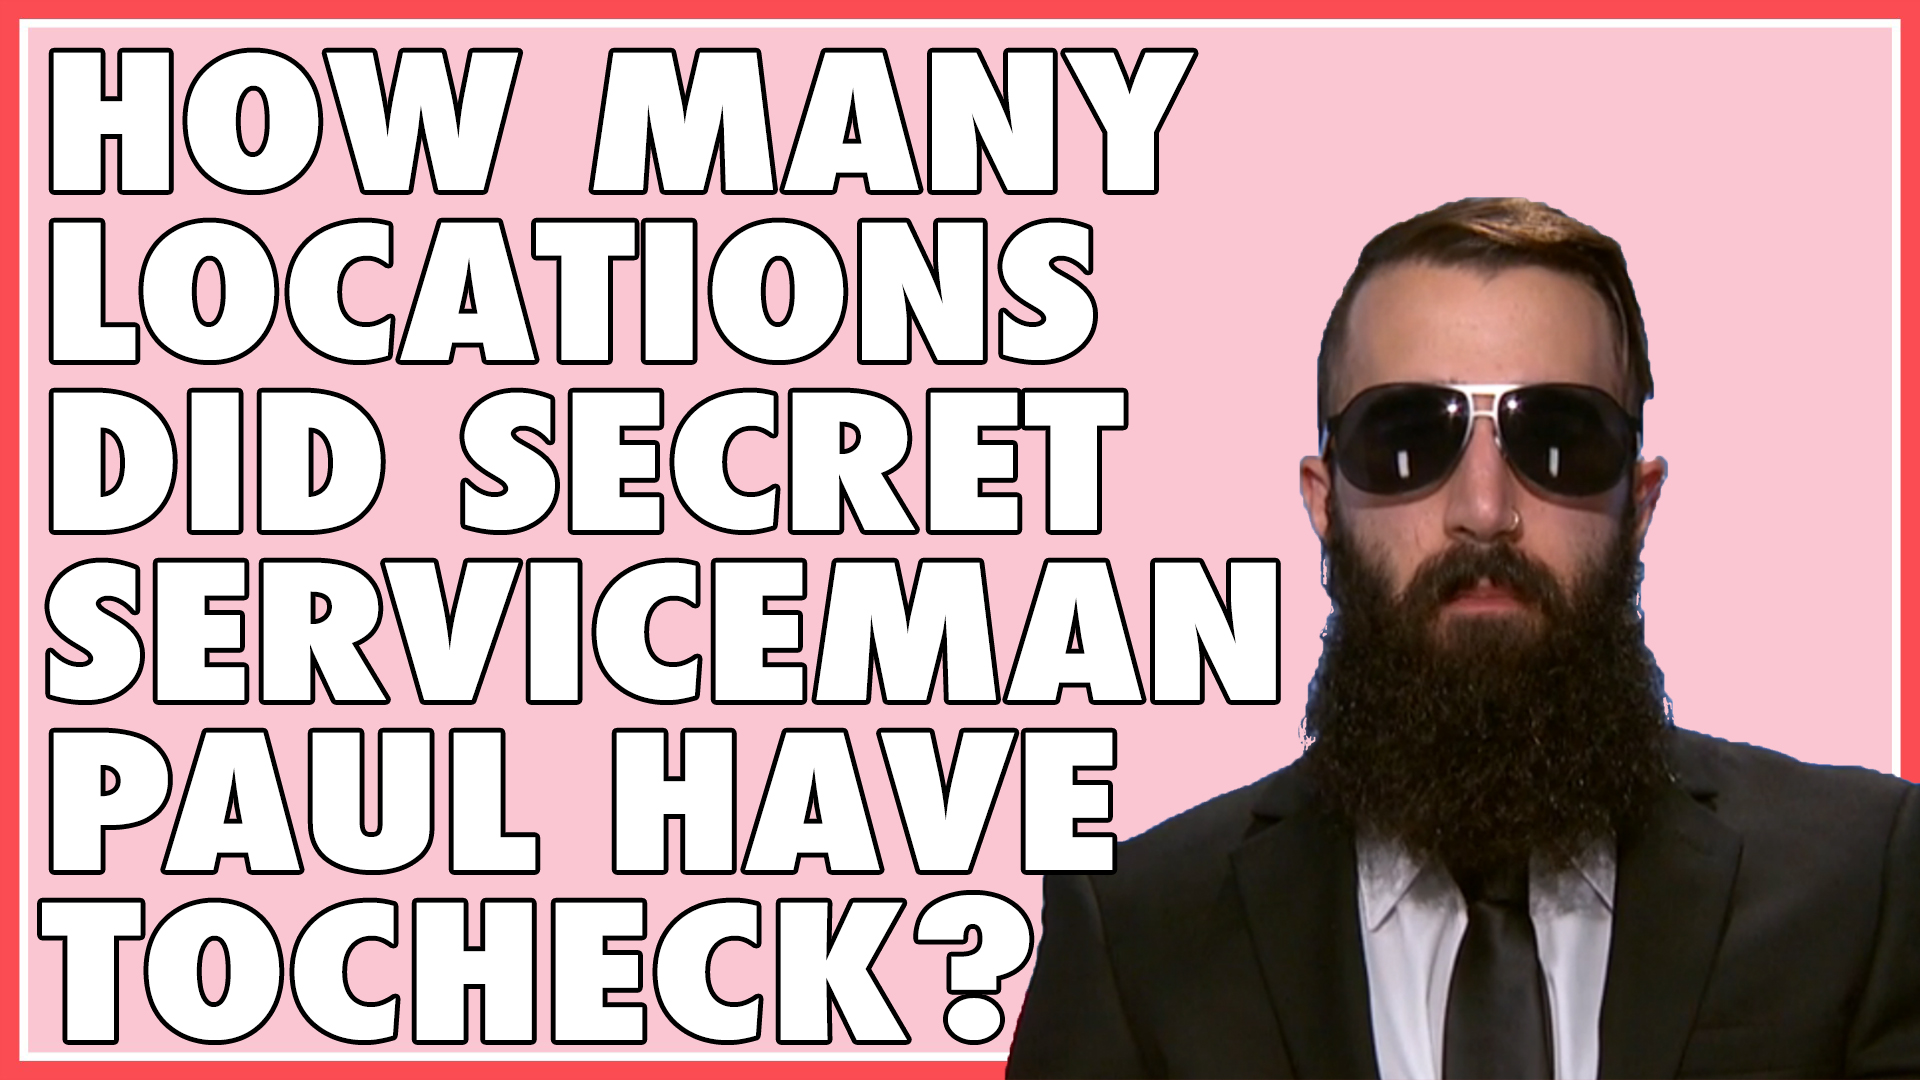 How many locations did Secret Serviceman Paul have to check?